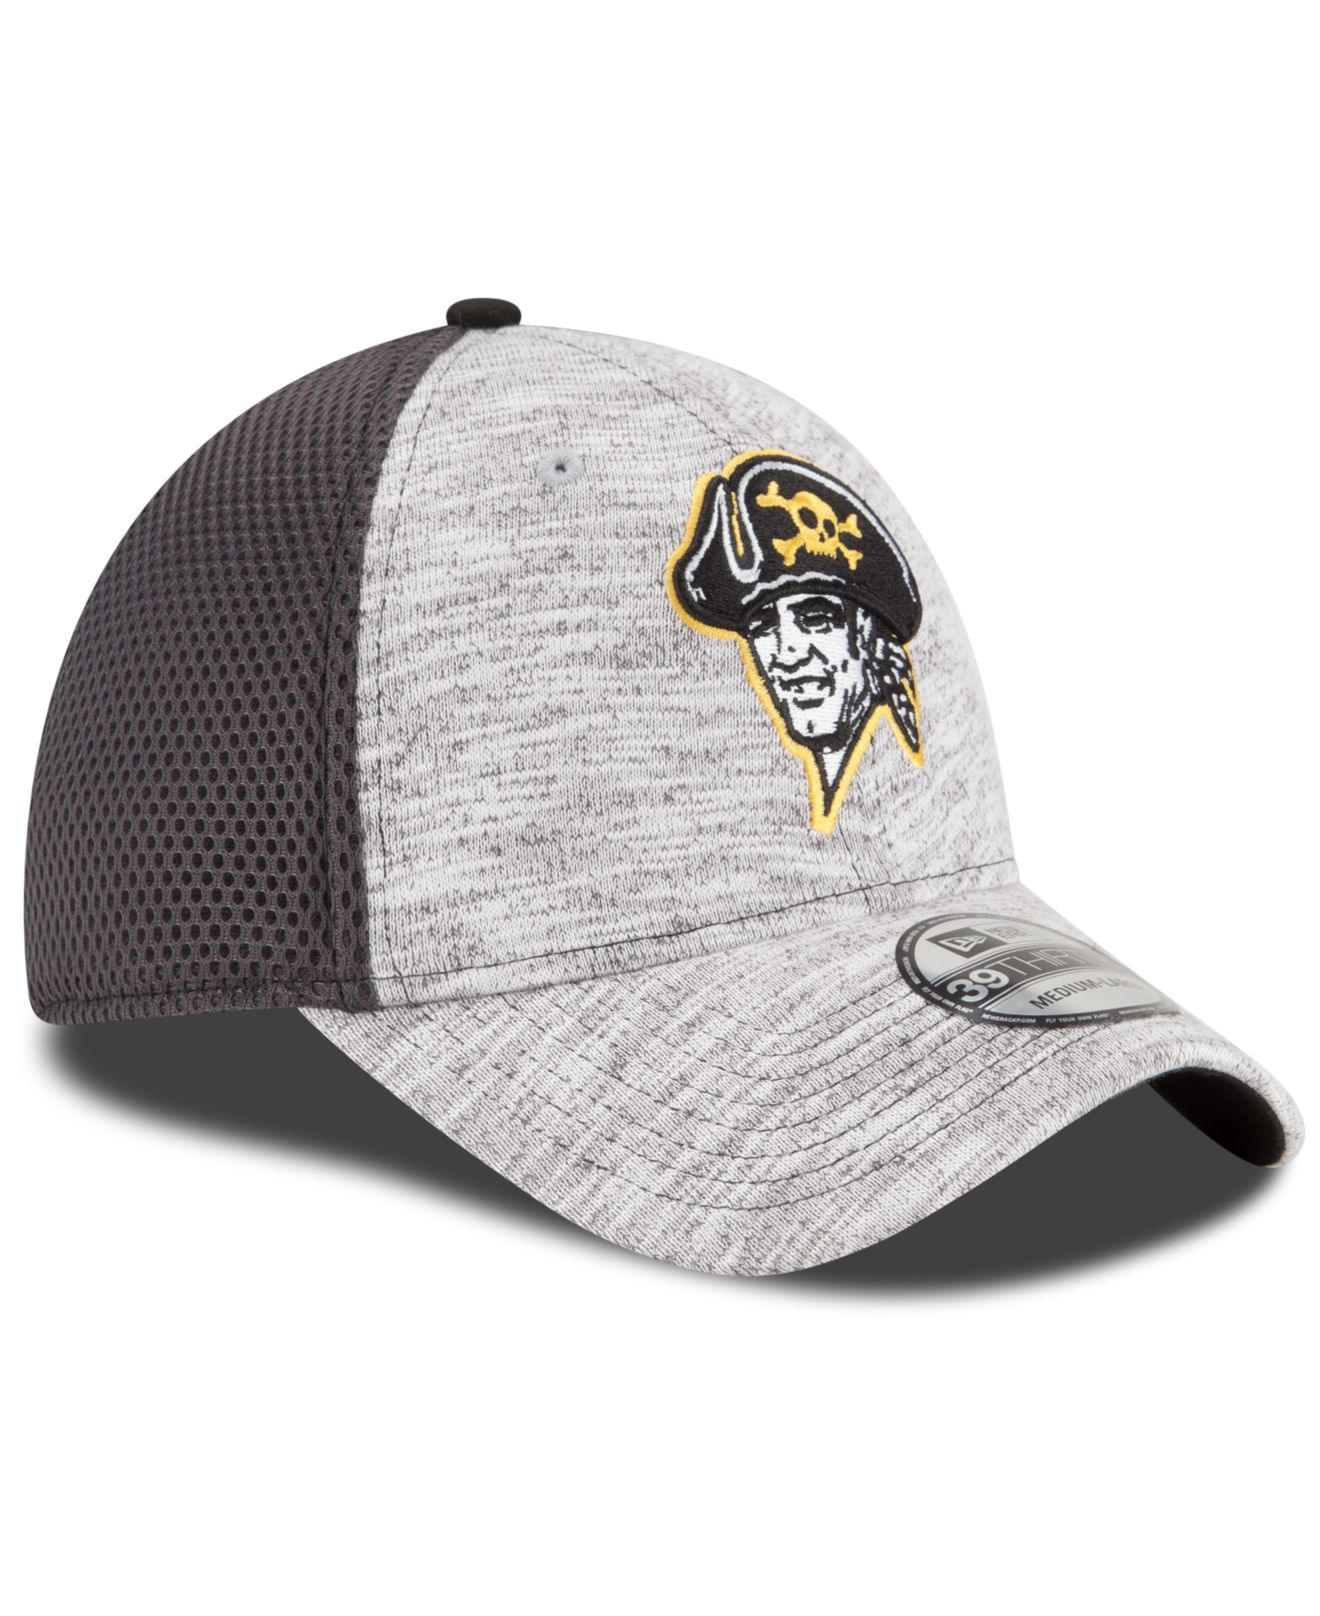 Sporting Goods MLB Pittsburgh Pirates New Era 2018 Clubhouse 39THIRTY Stretch Fit Cap Hat Baseball